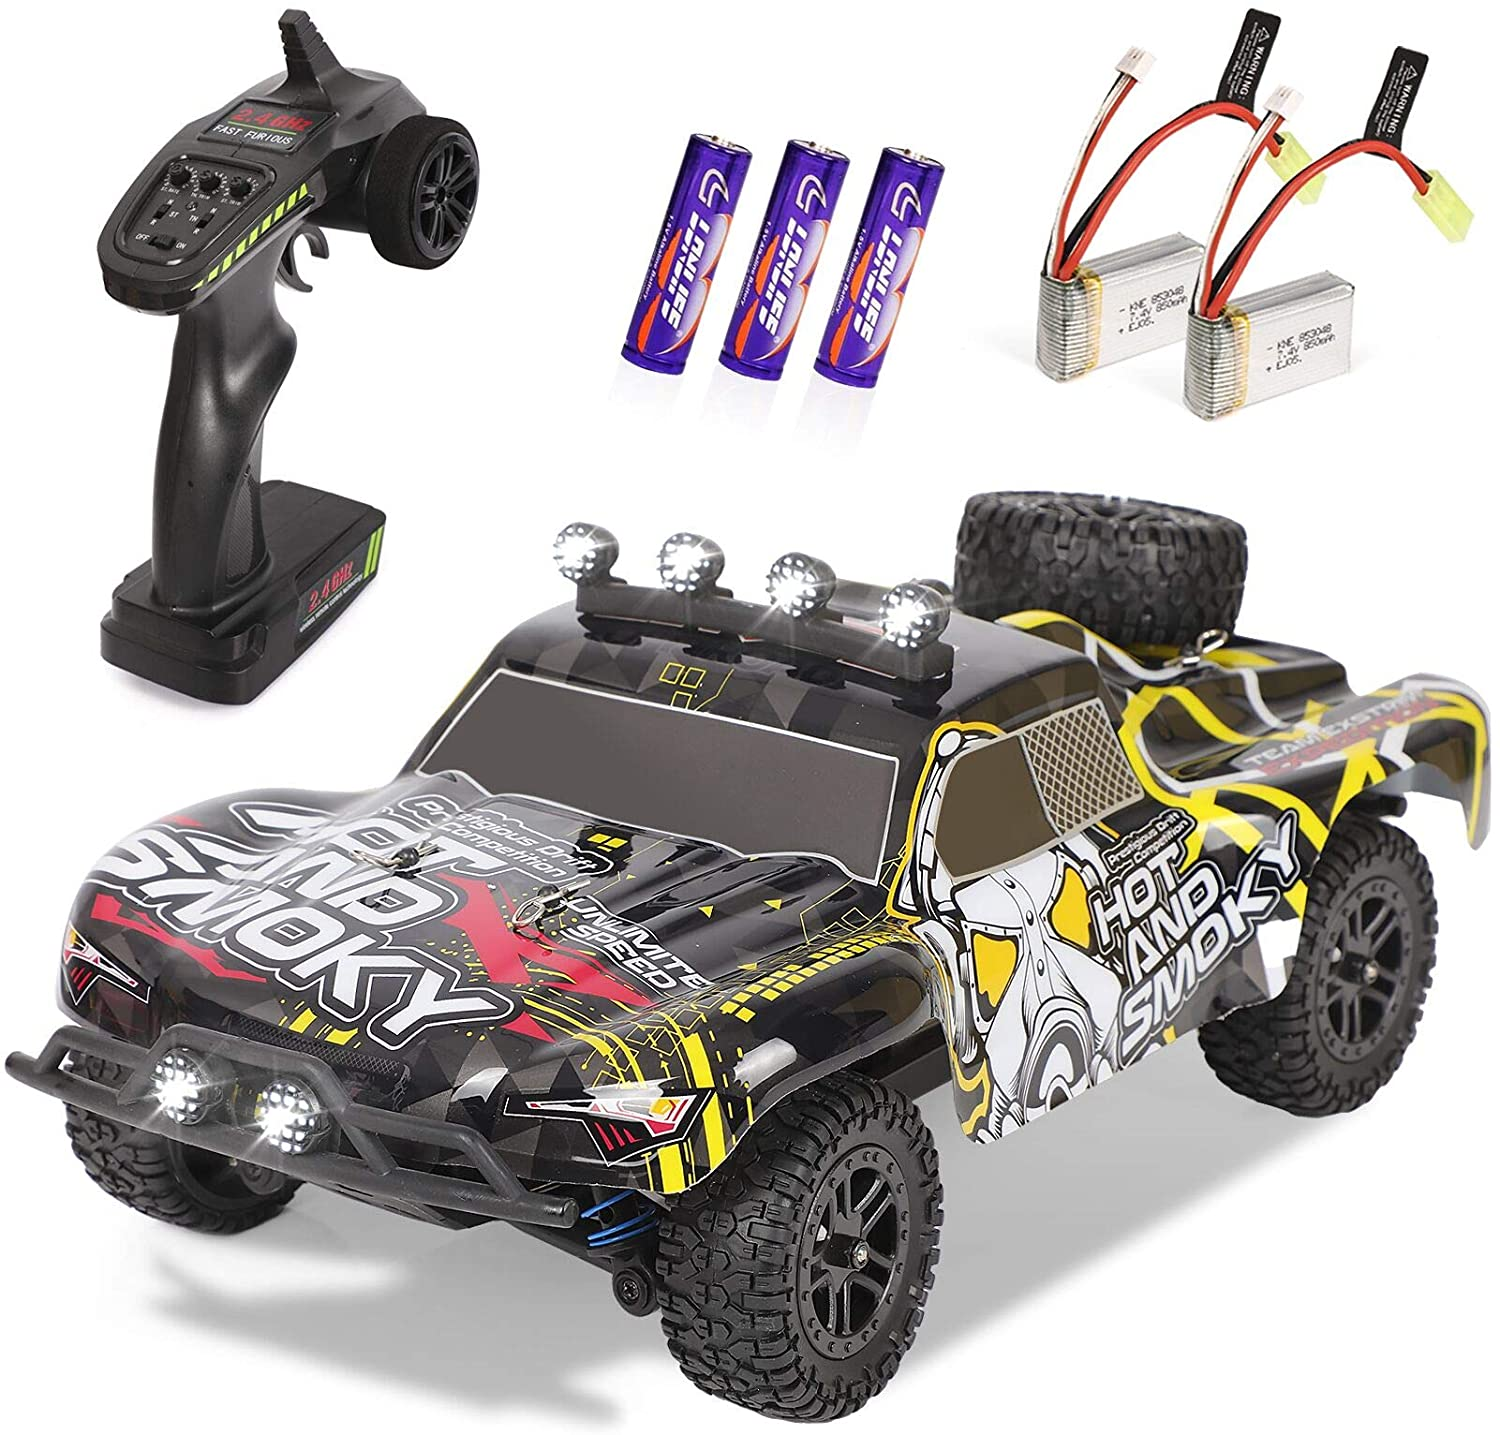 RC Cars, 1/18 Scale High-Speed Remote Car for Adults Kids,30+ kmh 4WD 2.4GHz Off-Road Monster RC Truck,All Terrain Electric Vehicle Toy Boy Gift with 2 Batteries for 30+ Min Play